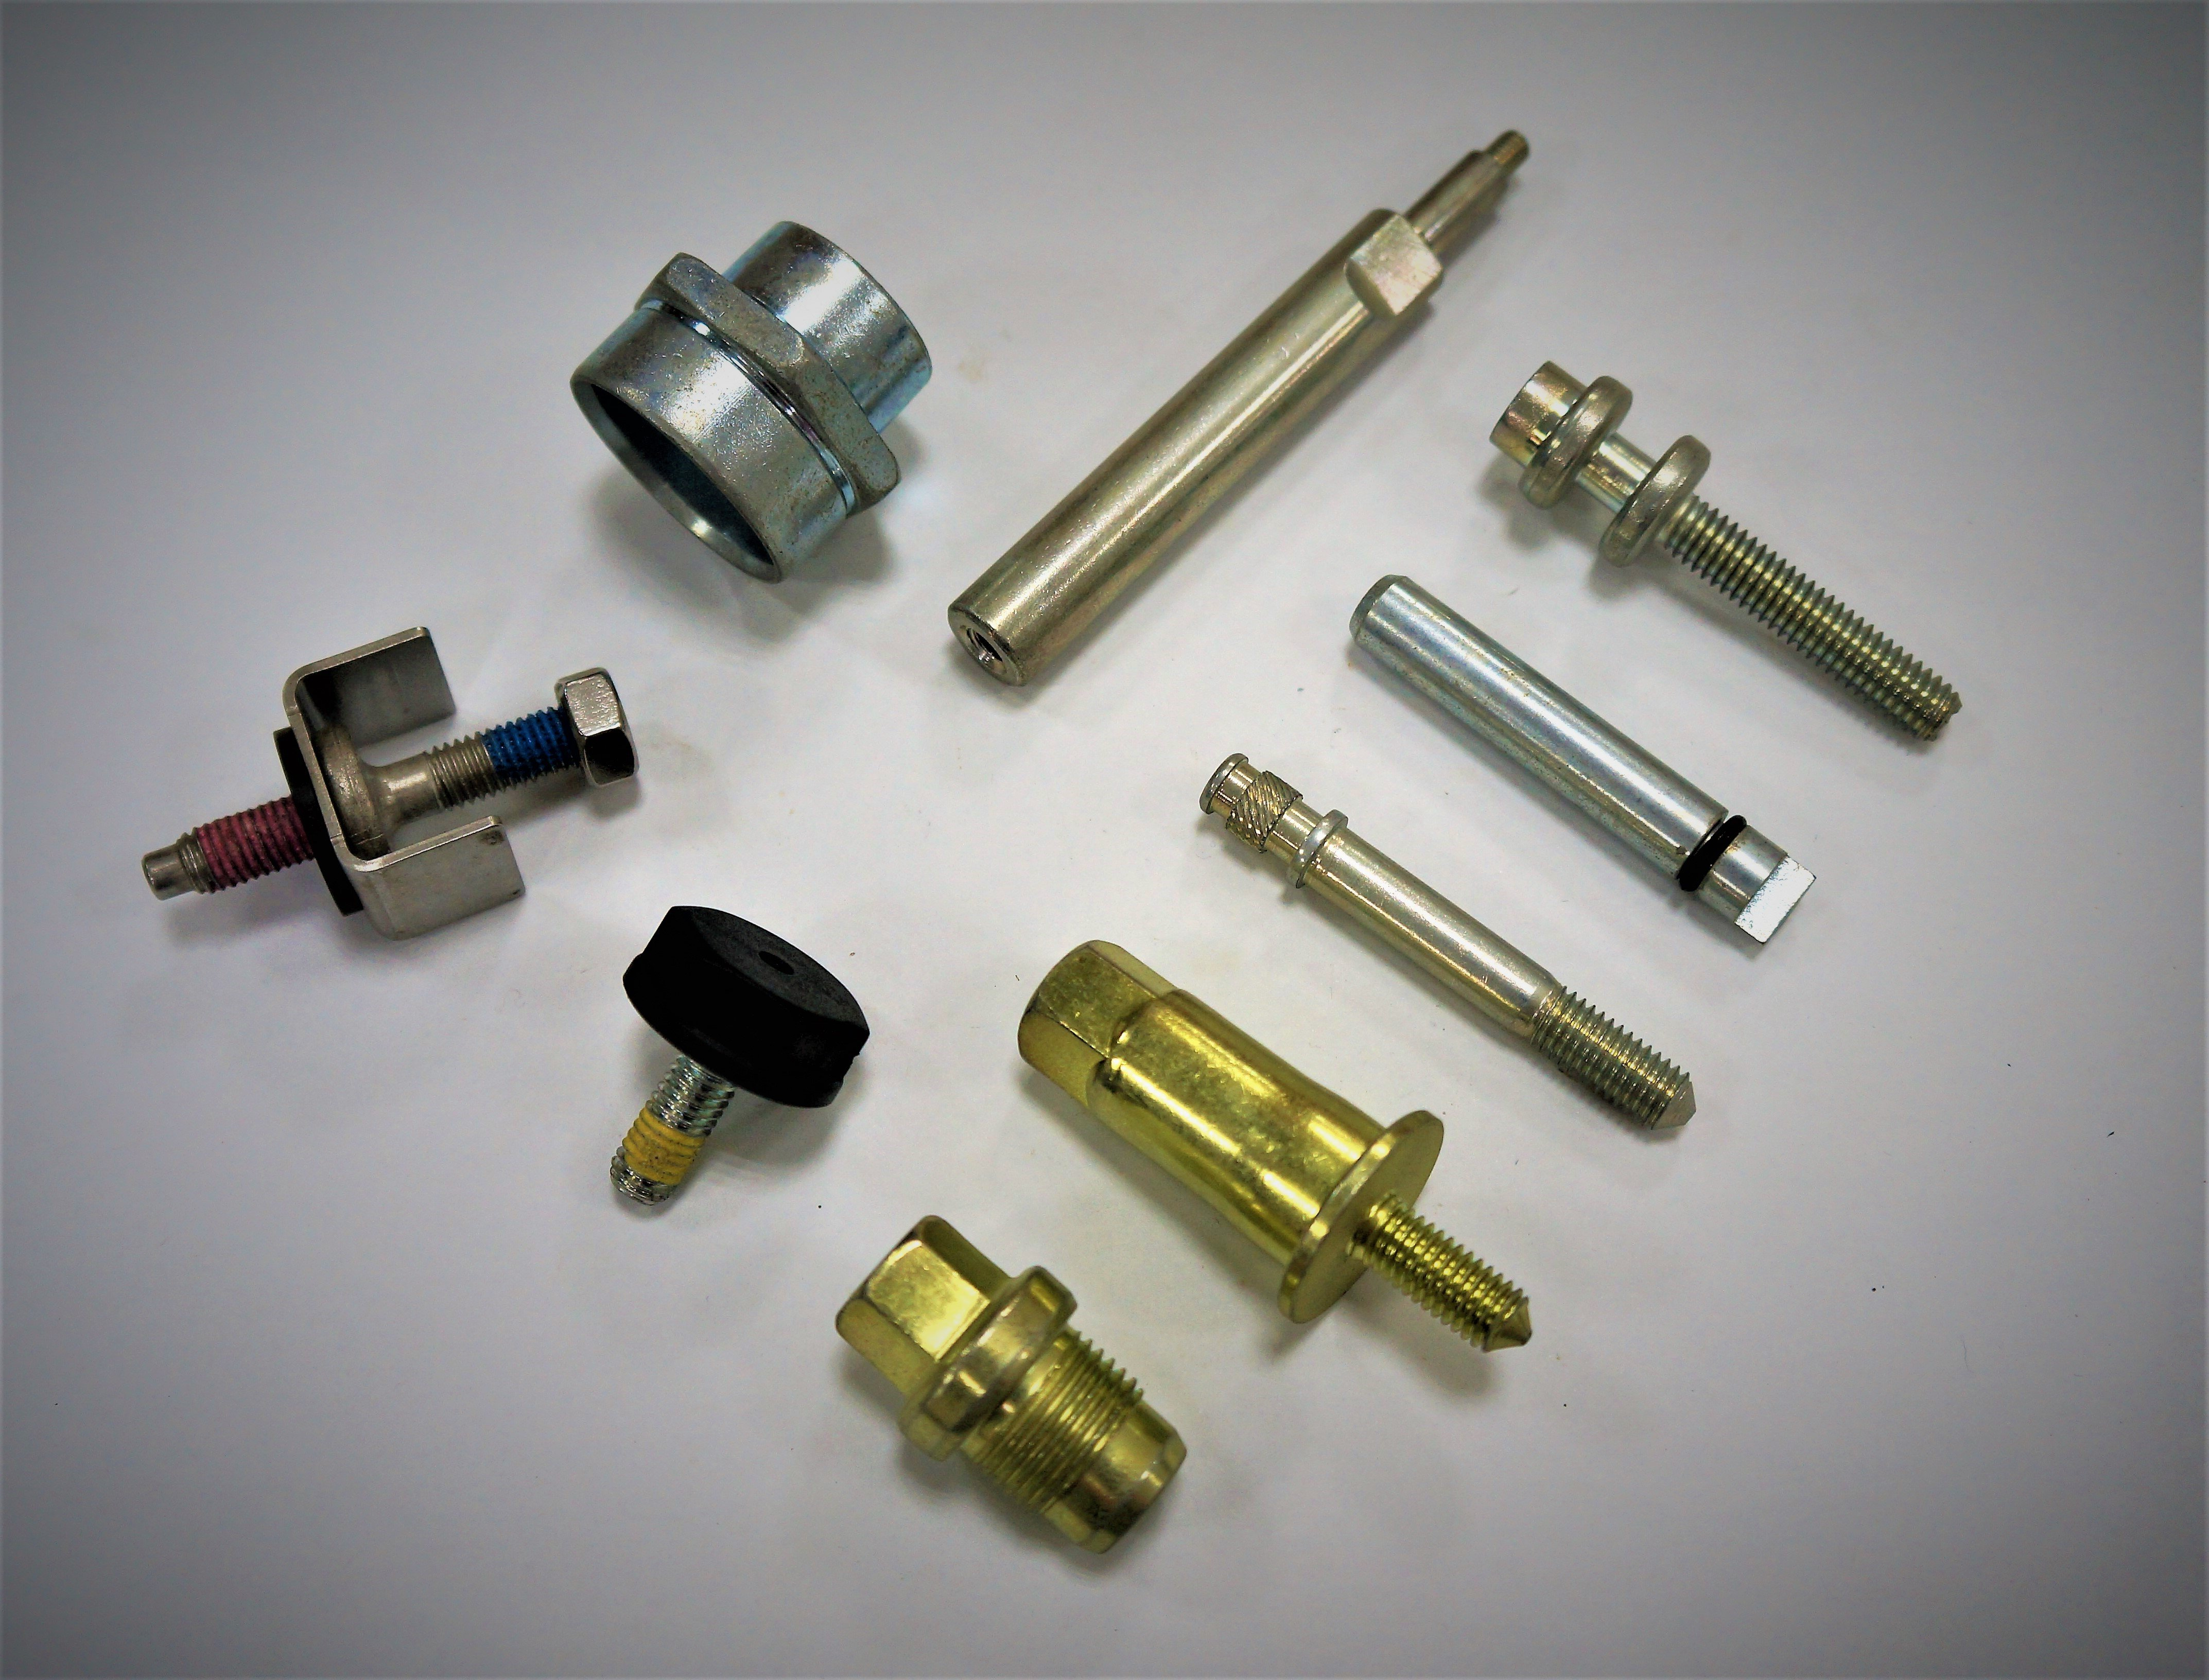 Automobile Special Screw with Nylon for Vehicle Fastener made by Sunny Screw Industry 三能螺栓工業股份有限公司 - MatchSupplier.com